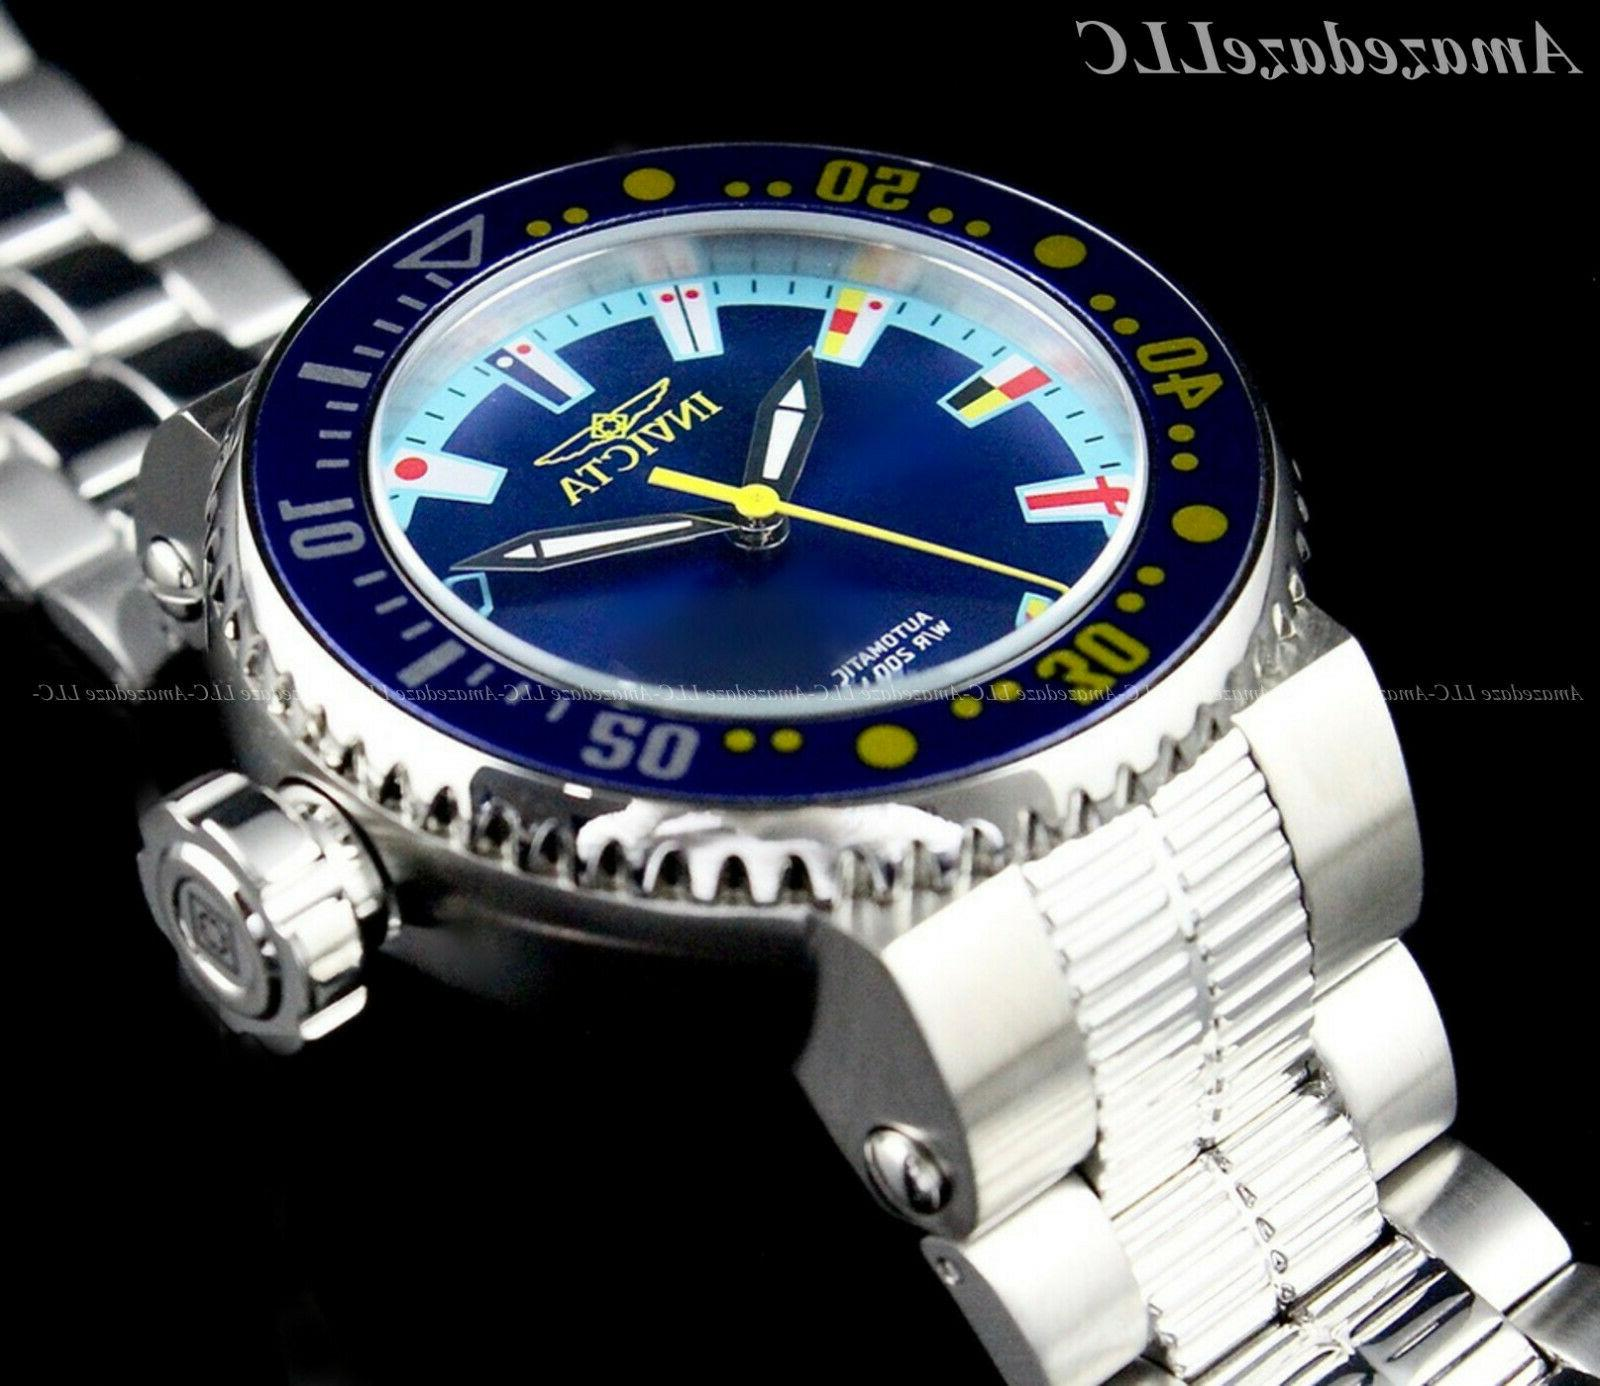 Invicta PRO DIVER Blue Dial Stainless Watch